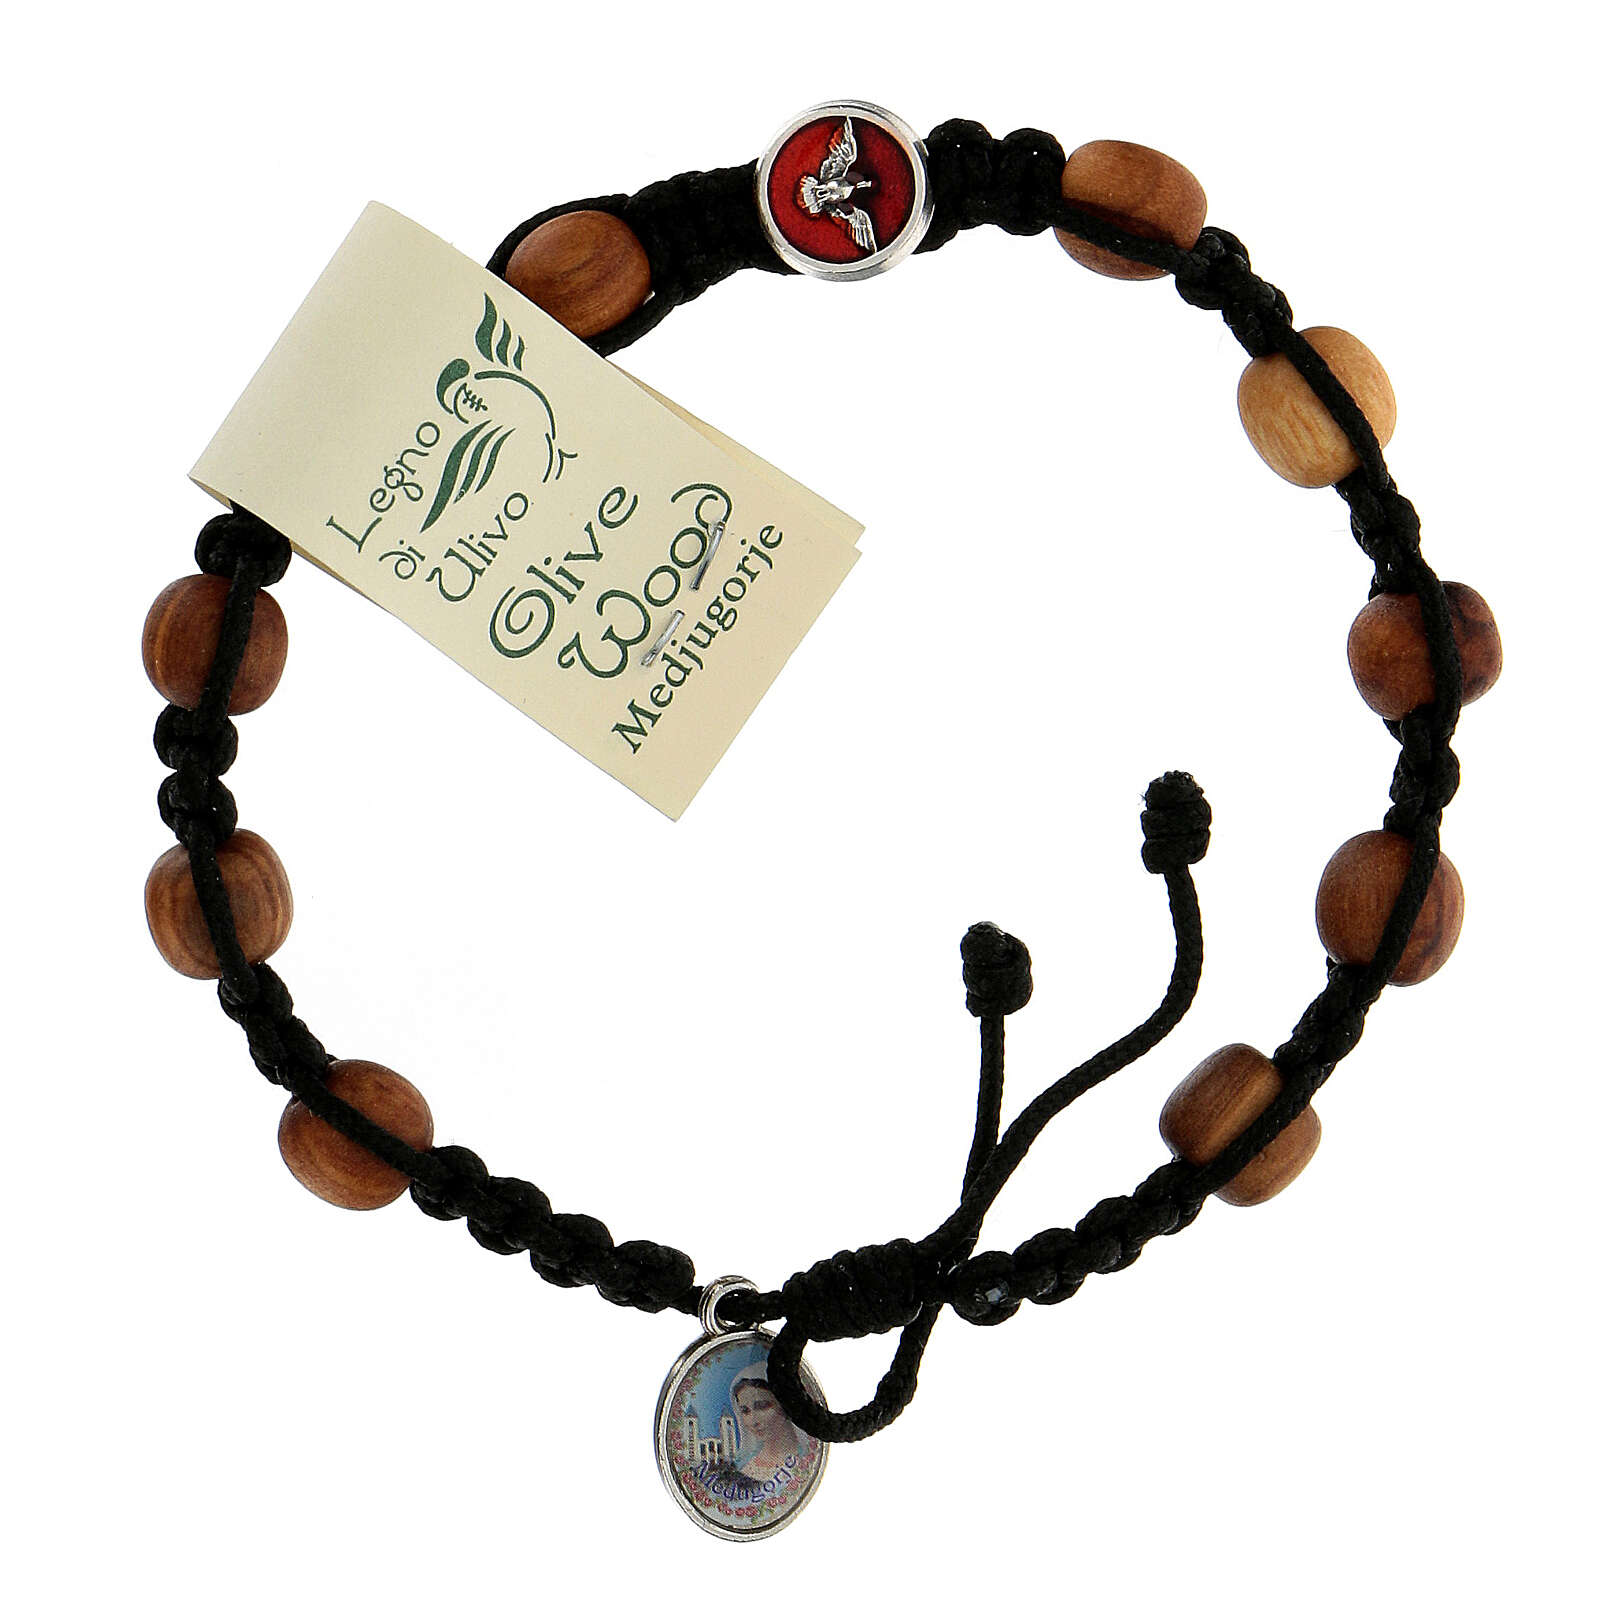 Medjugorje single decade rosary bracelet with Holy Spirit medallions, olive wood grains and black rope 4